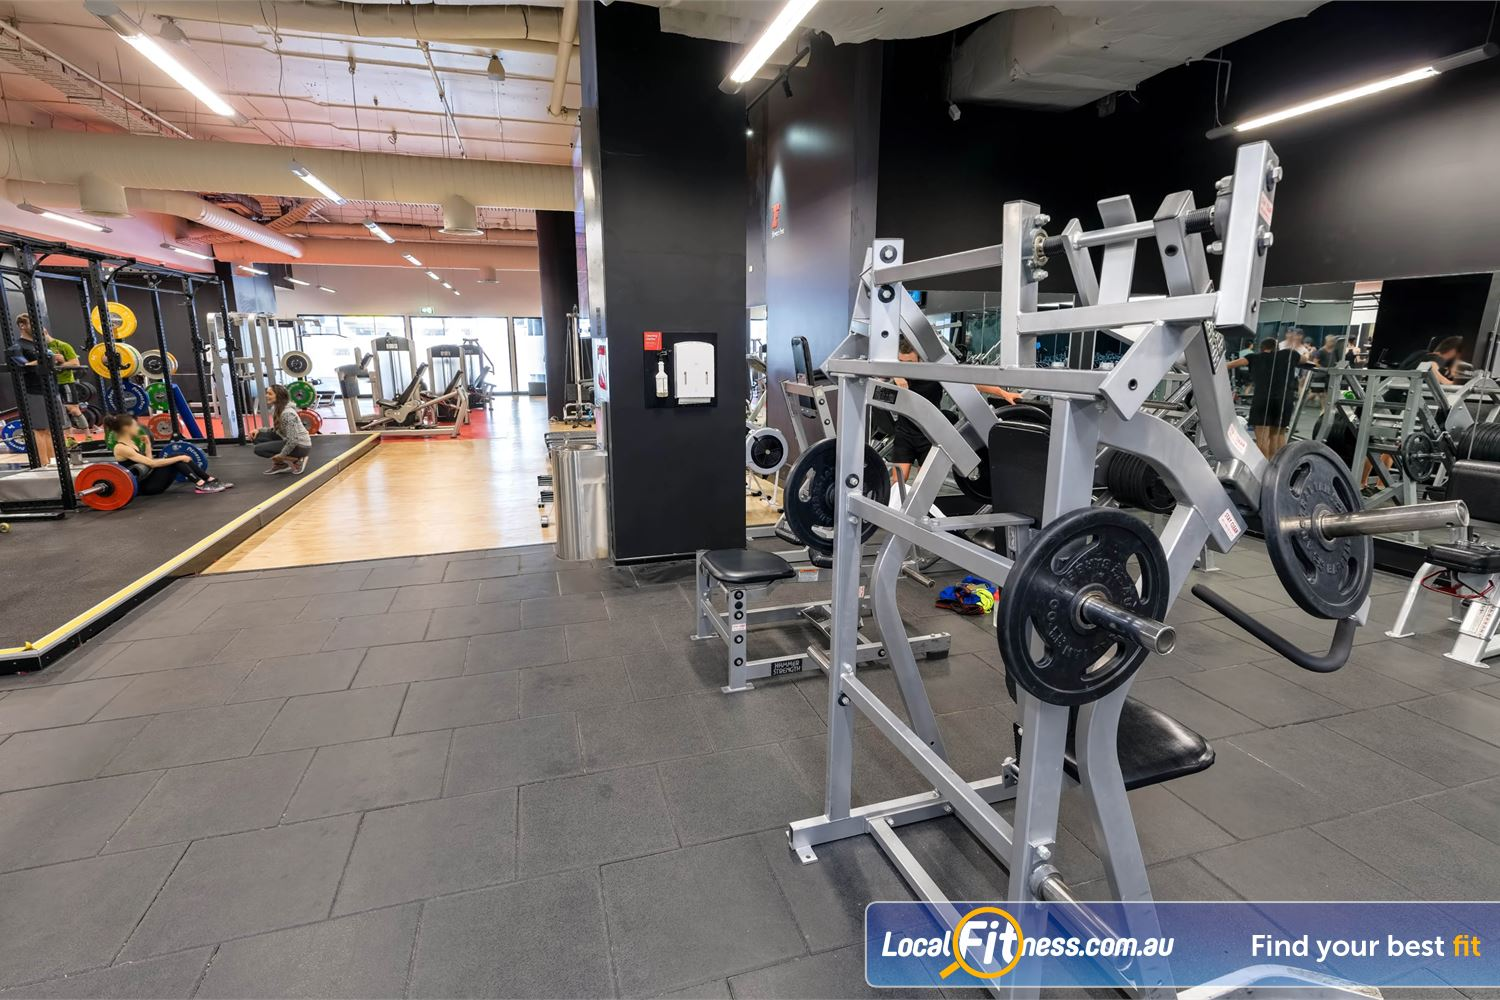 Fitness First Platinum Market St. Near World Square Our Sydney gym includes a full range of plate-loading machines to target specific muscle groups.